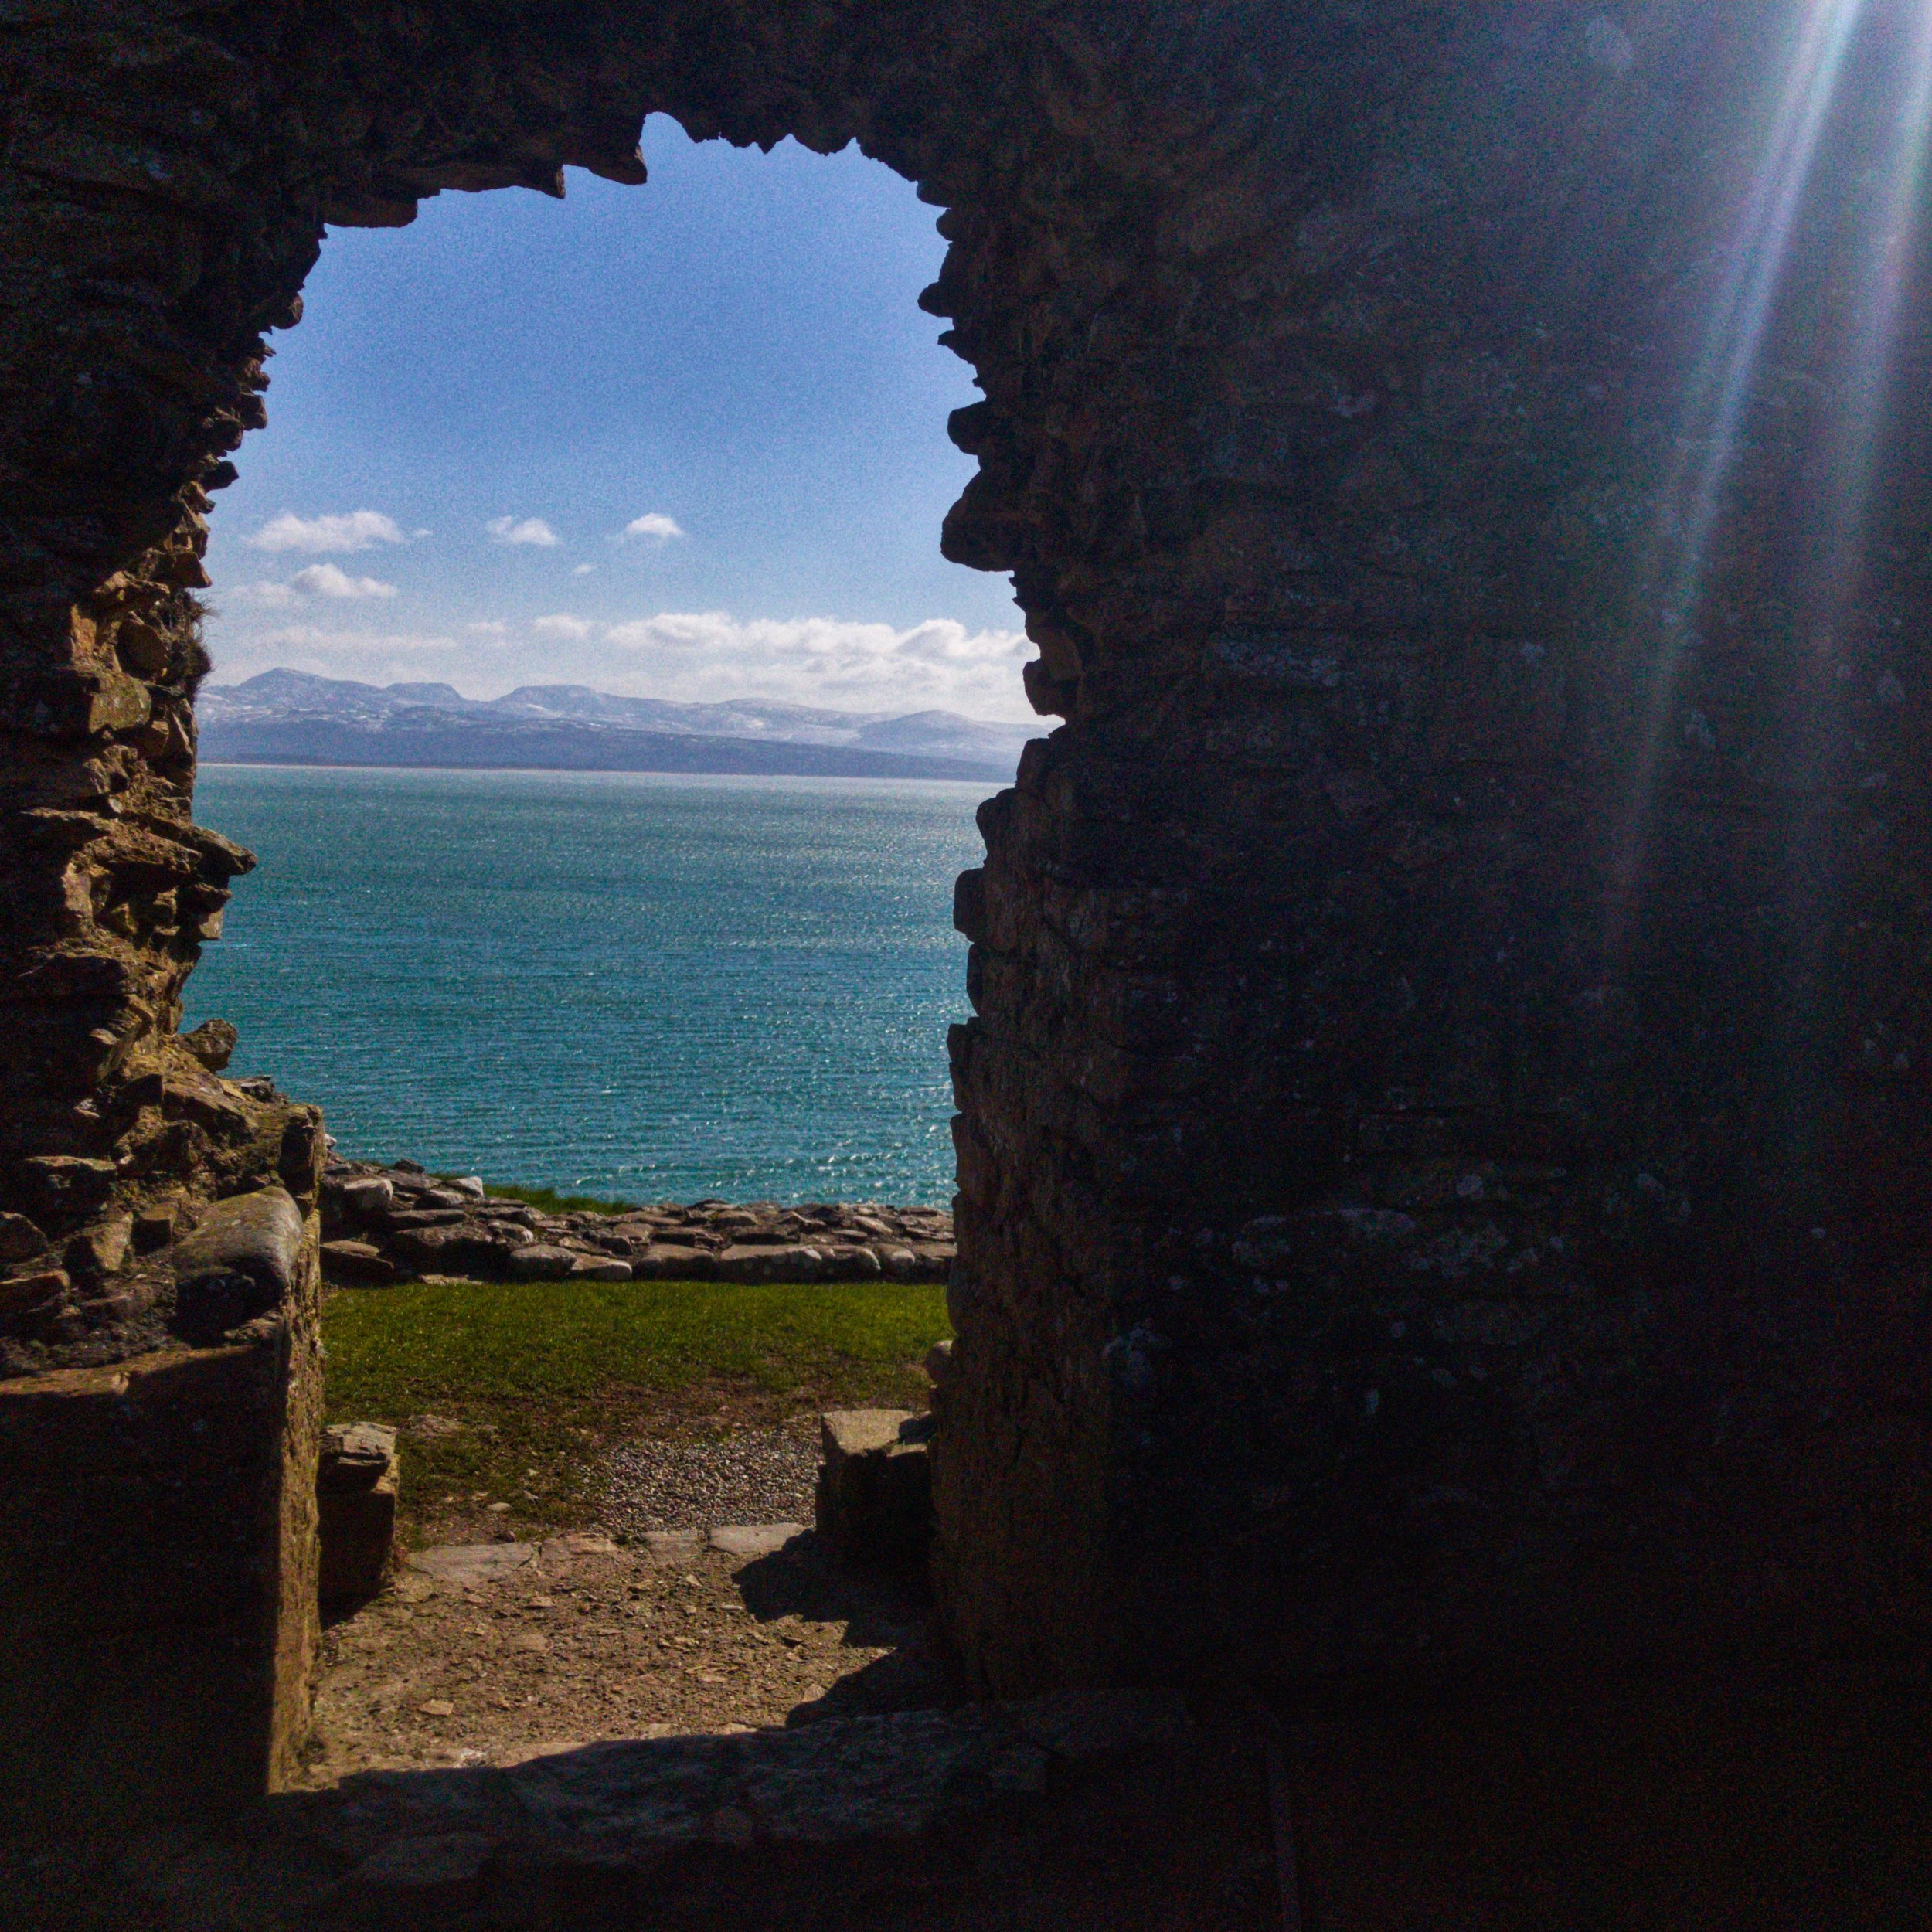 The view of Cardigan Bay from on high, Criccieth Castle